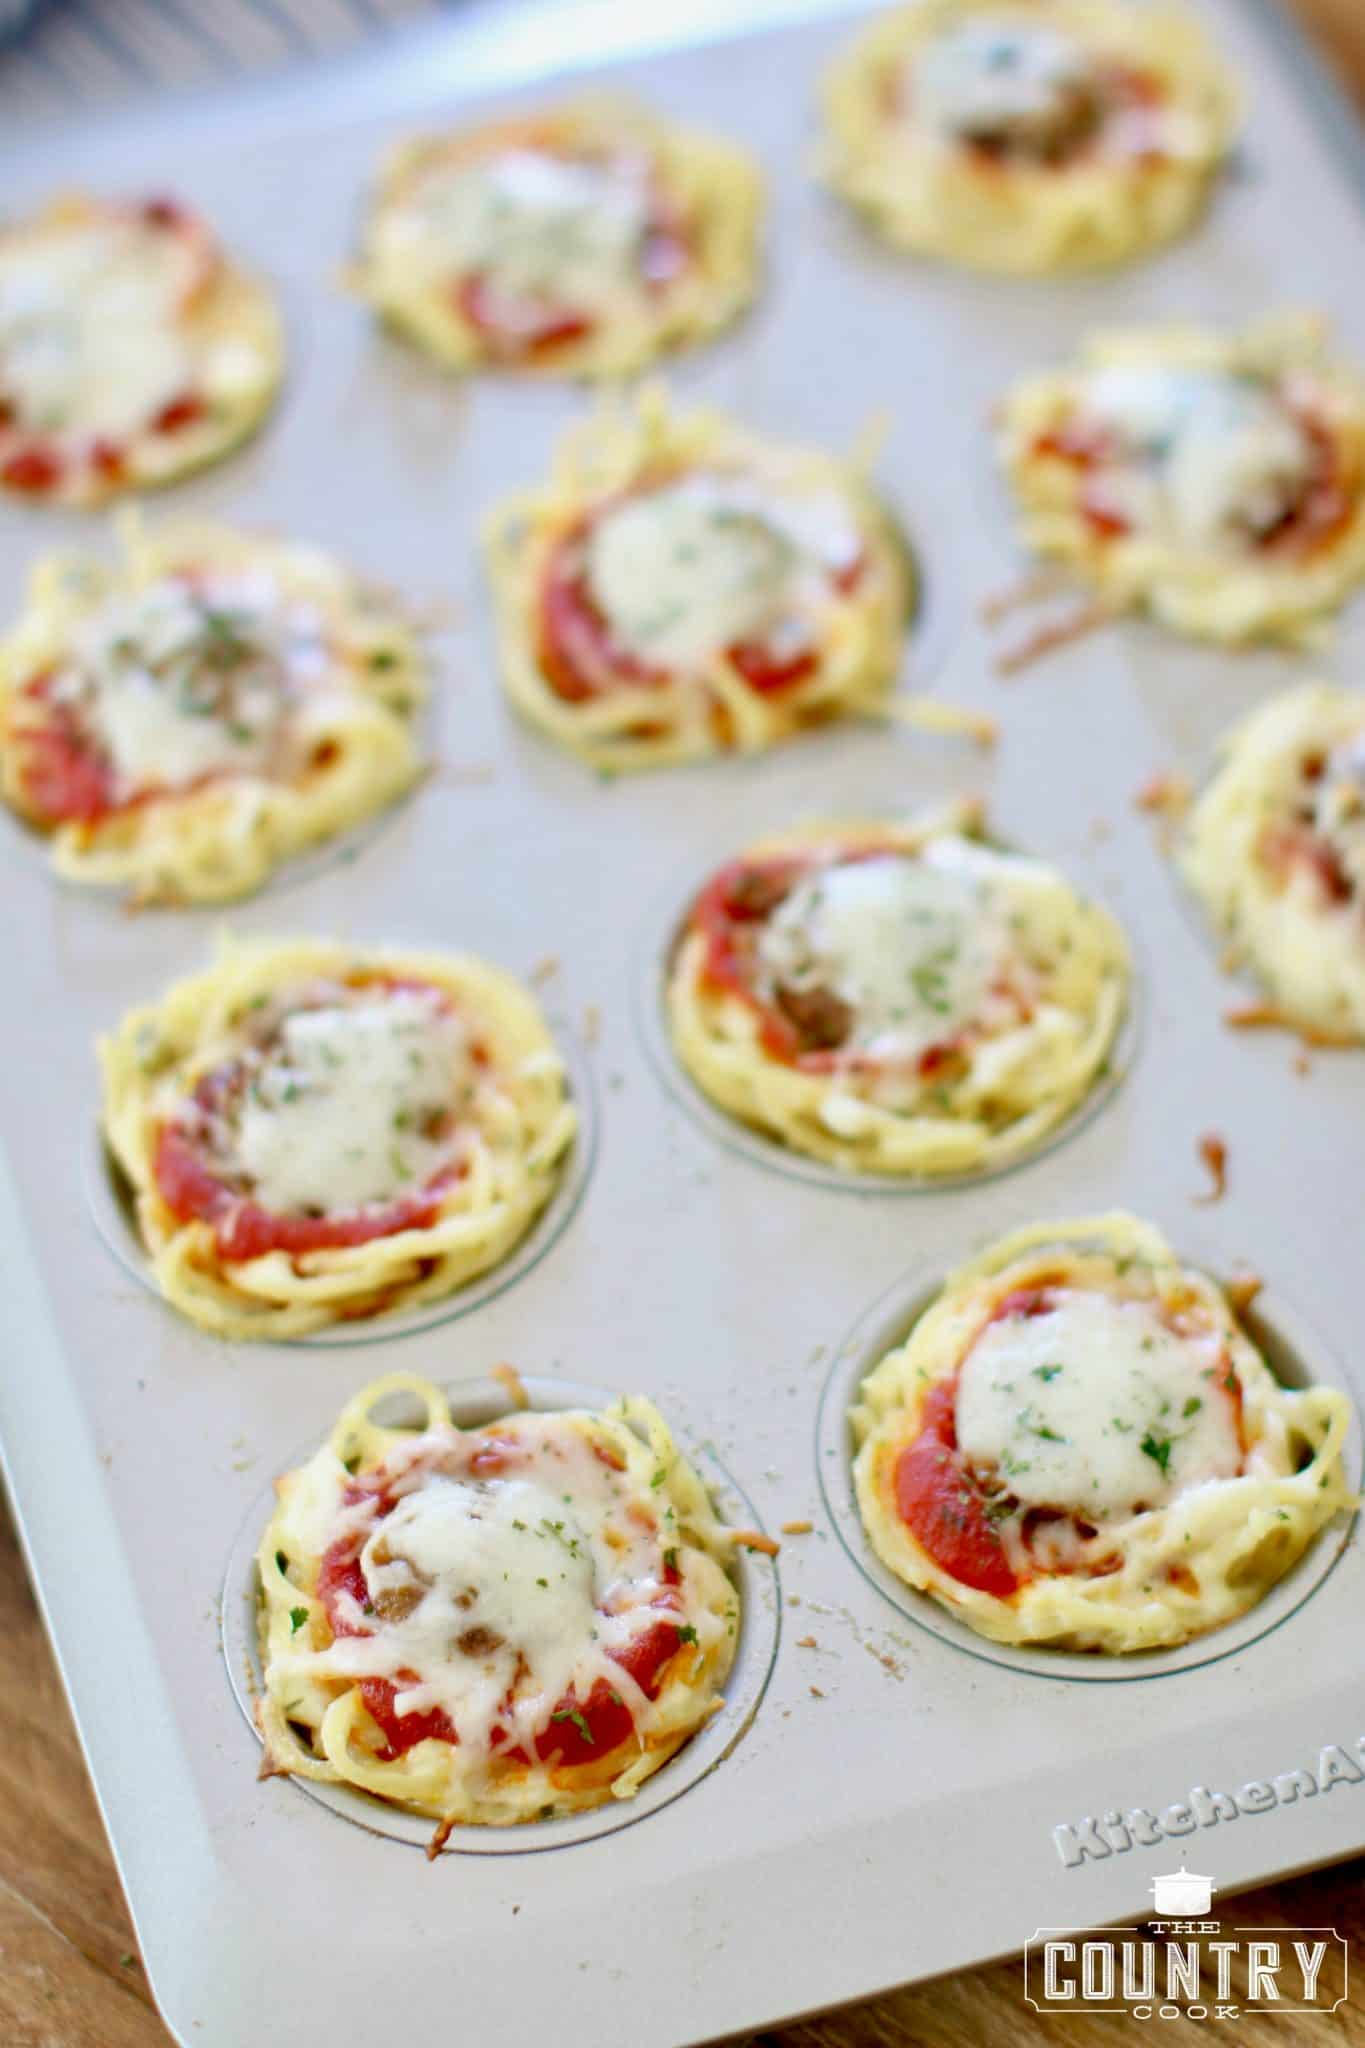 finished, spaghetti and sausage muffins still in muffin pan (before serving)